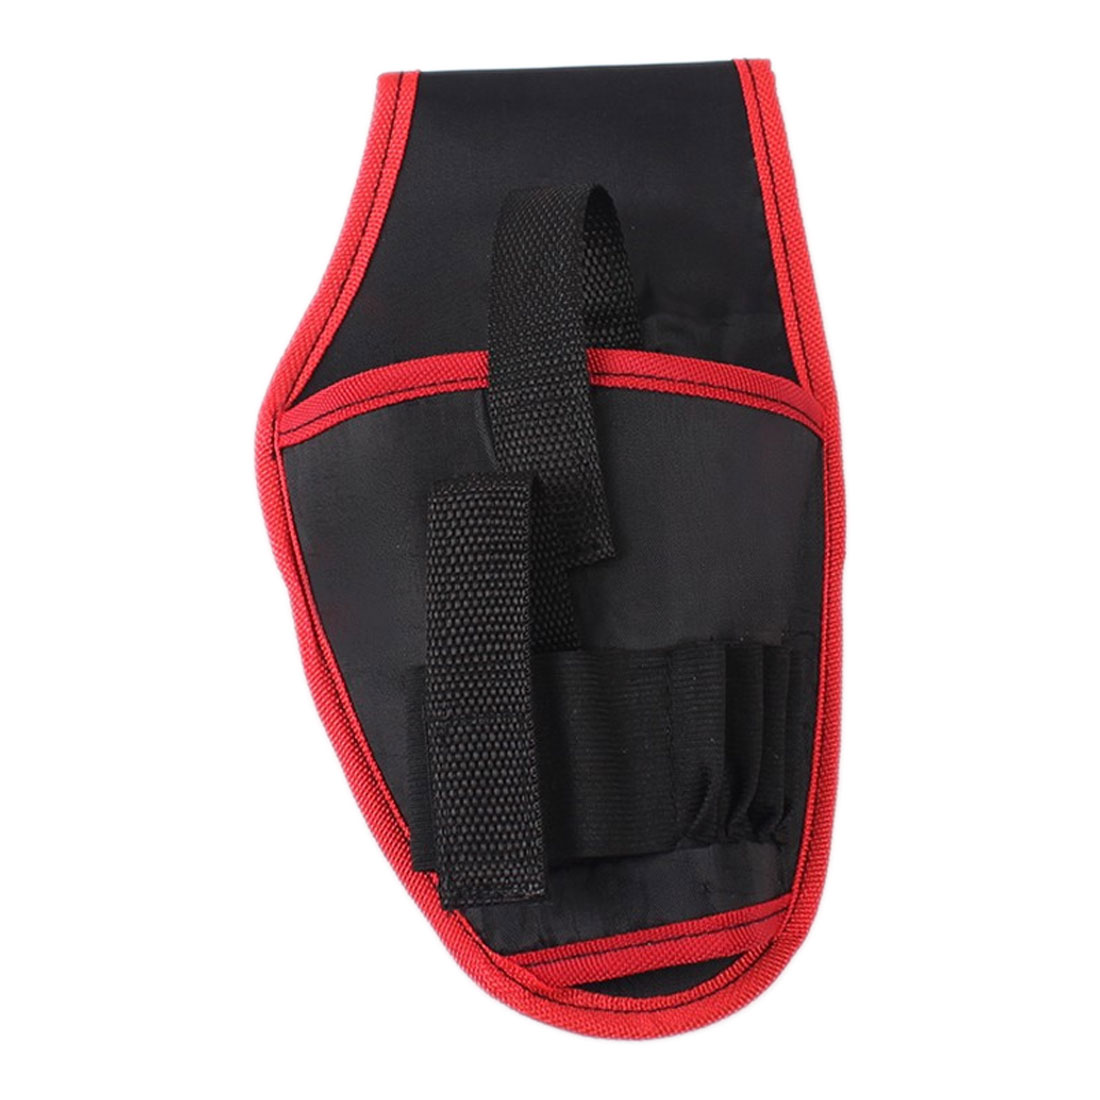 Portable Tool Bag Waist Belt Electrician Tool Pouch Bag Holder Drill Holster For 12V Lithium Cordless Drill Storage Bag